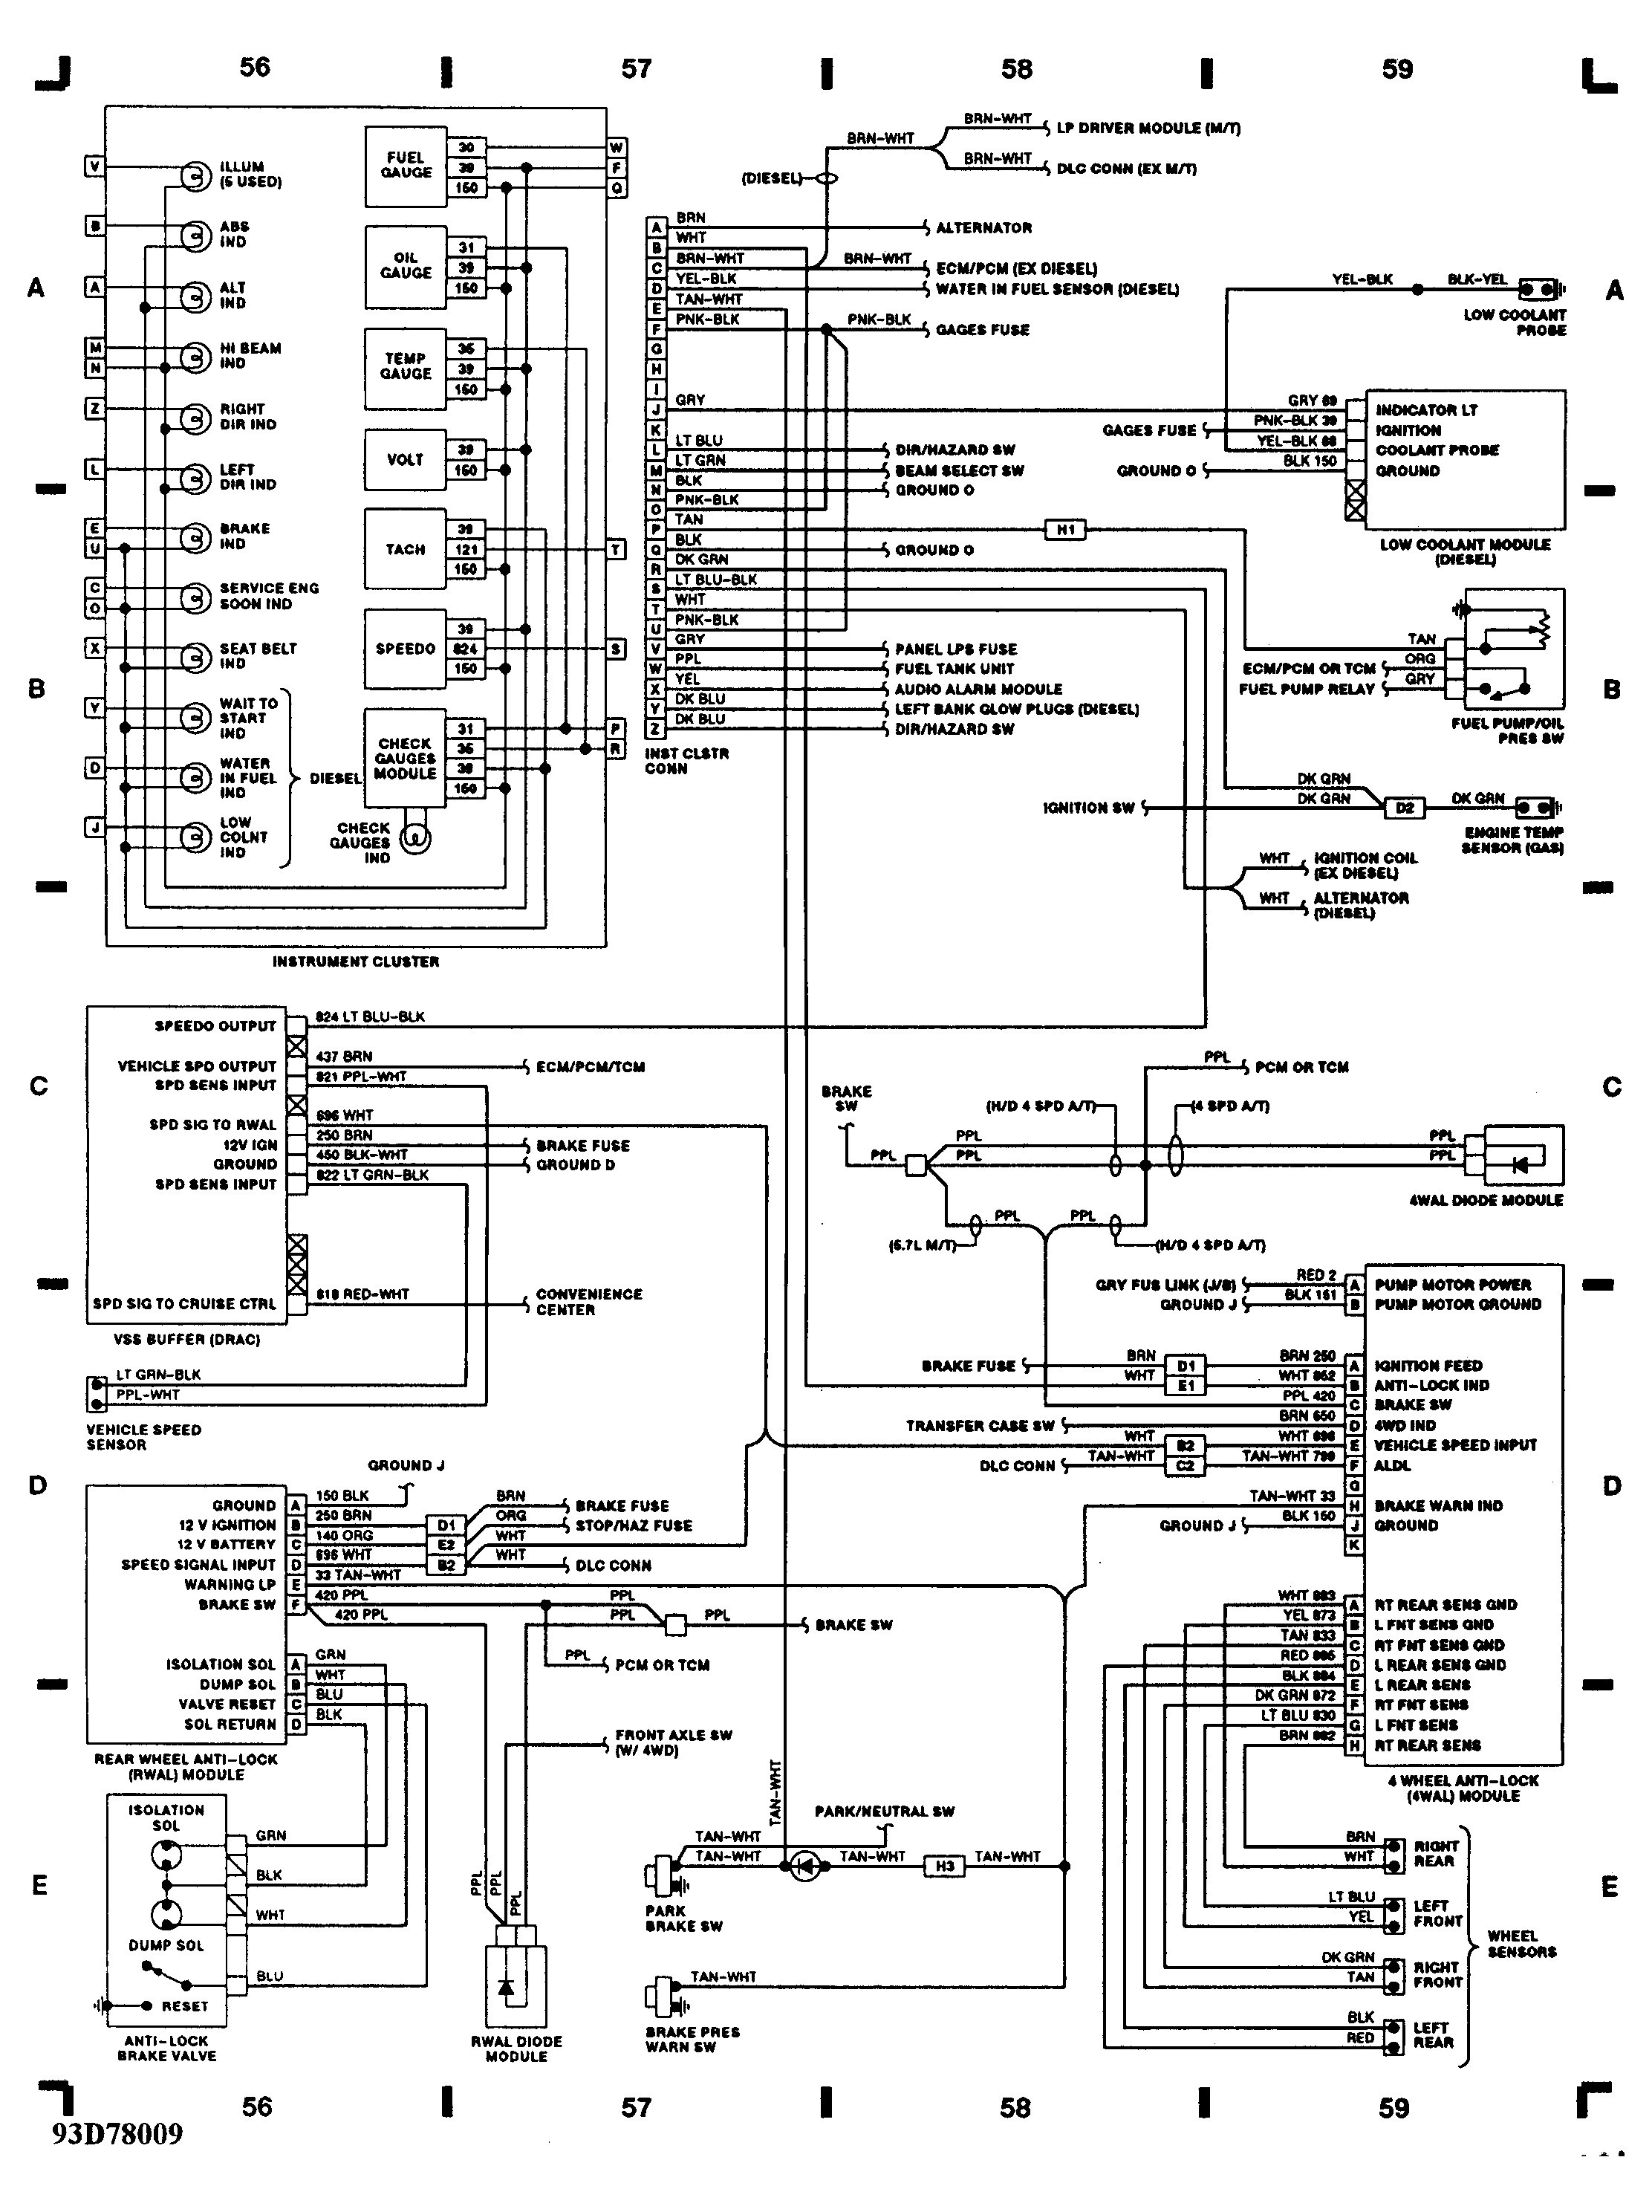 1997 Chevy S10 Wiring Diagram Pdf Wiring Diagram Steep Local A Steep Local A Maceratadoc It